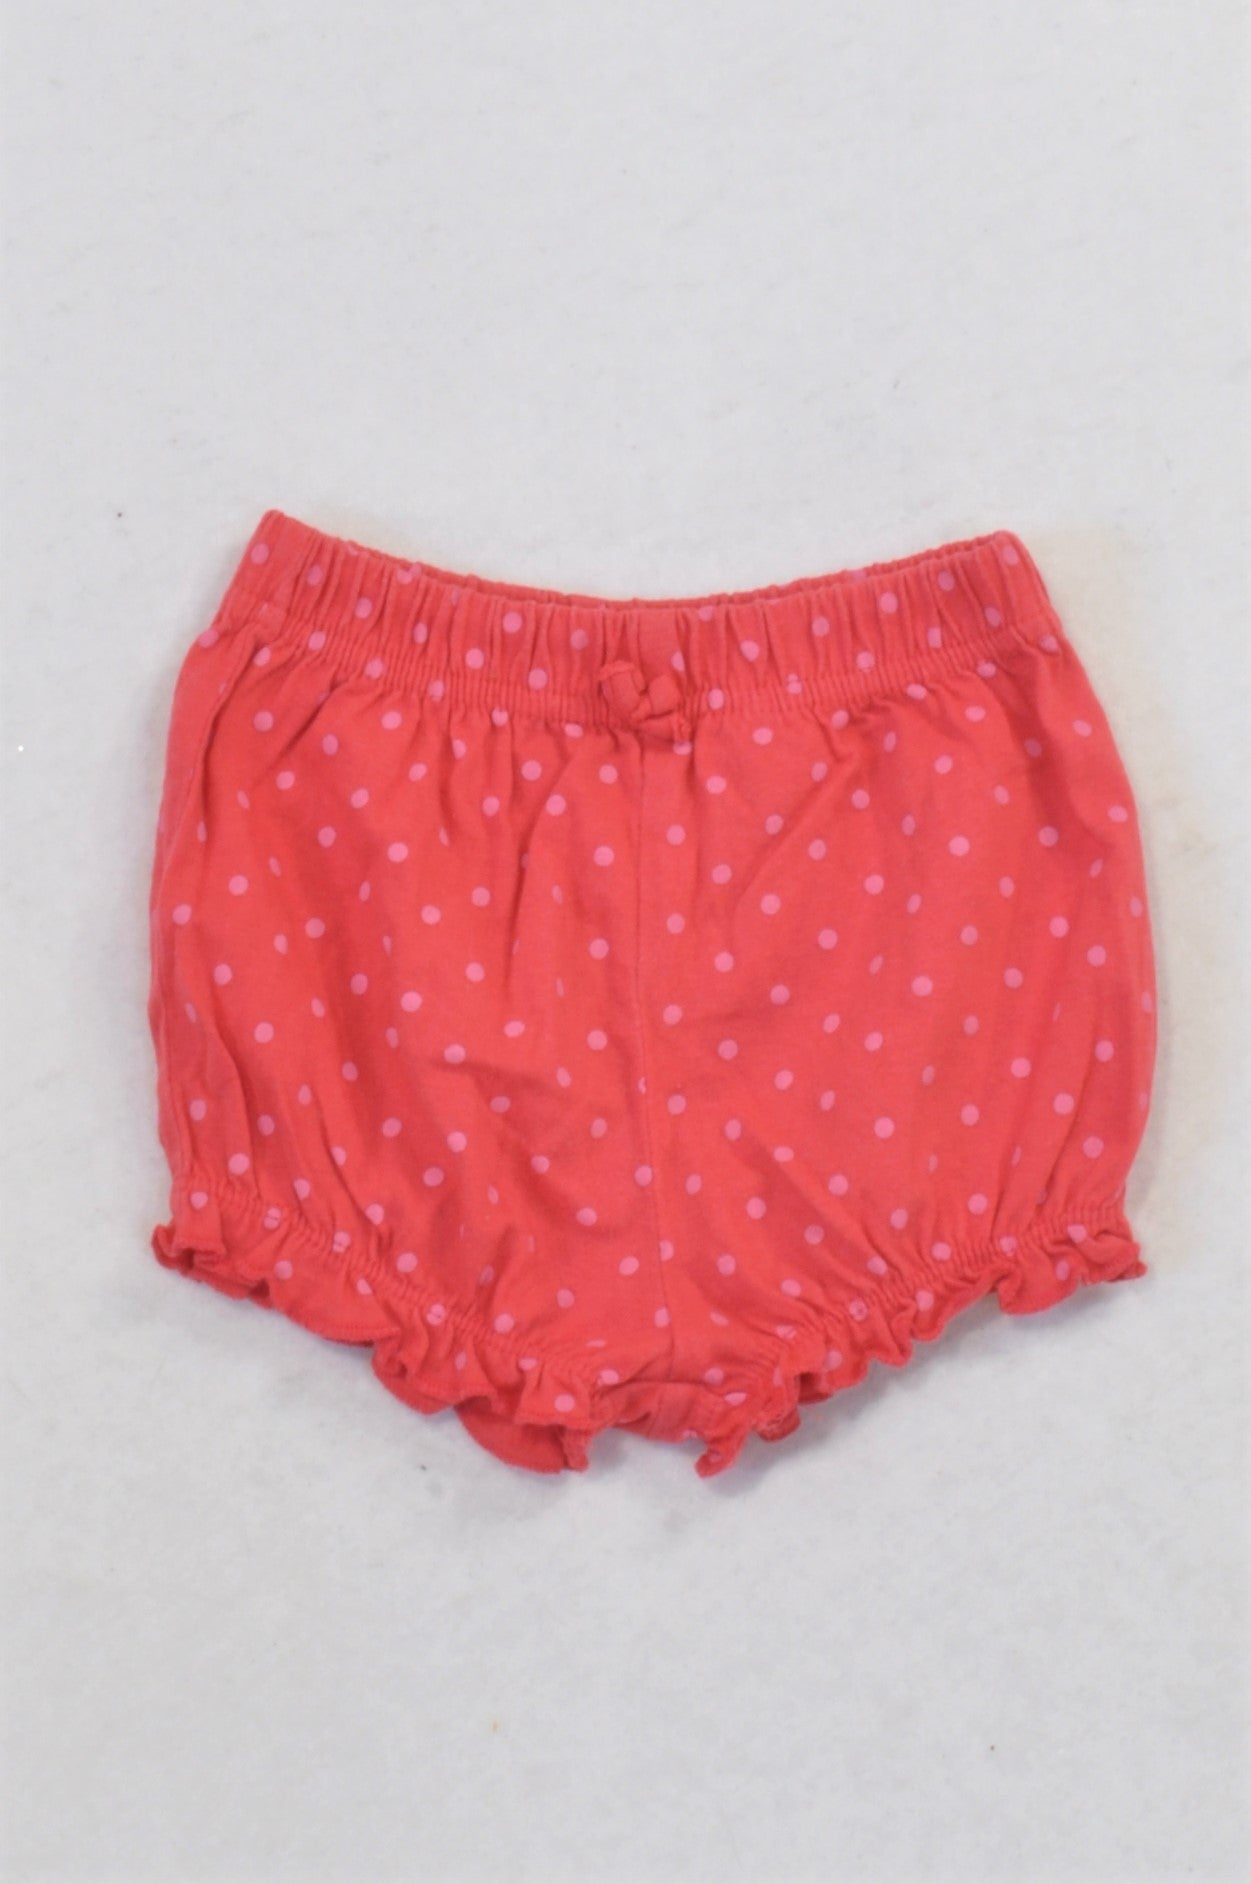 Ackermans Cerise & Pink Polka Dot Bubble Shorts Girls 3-6 months